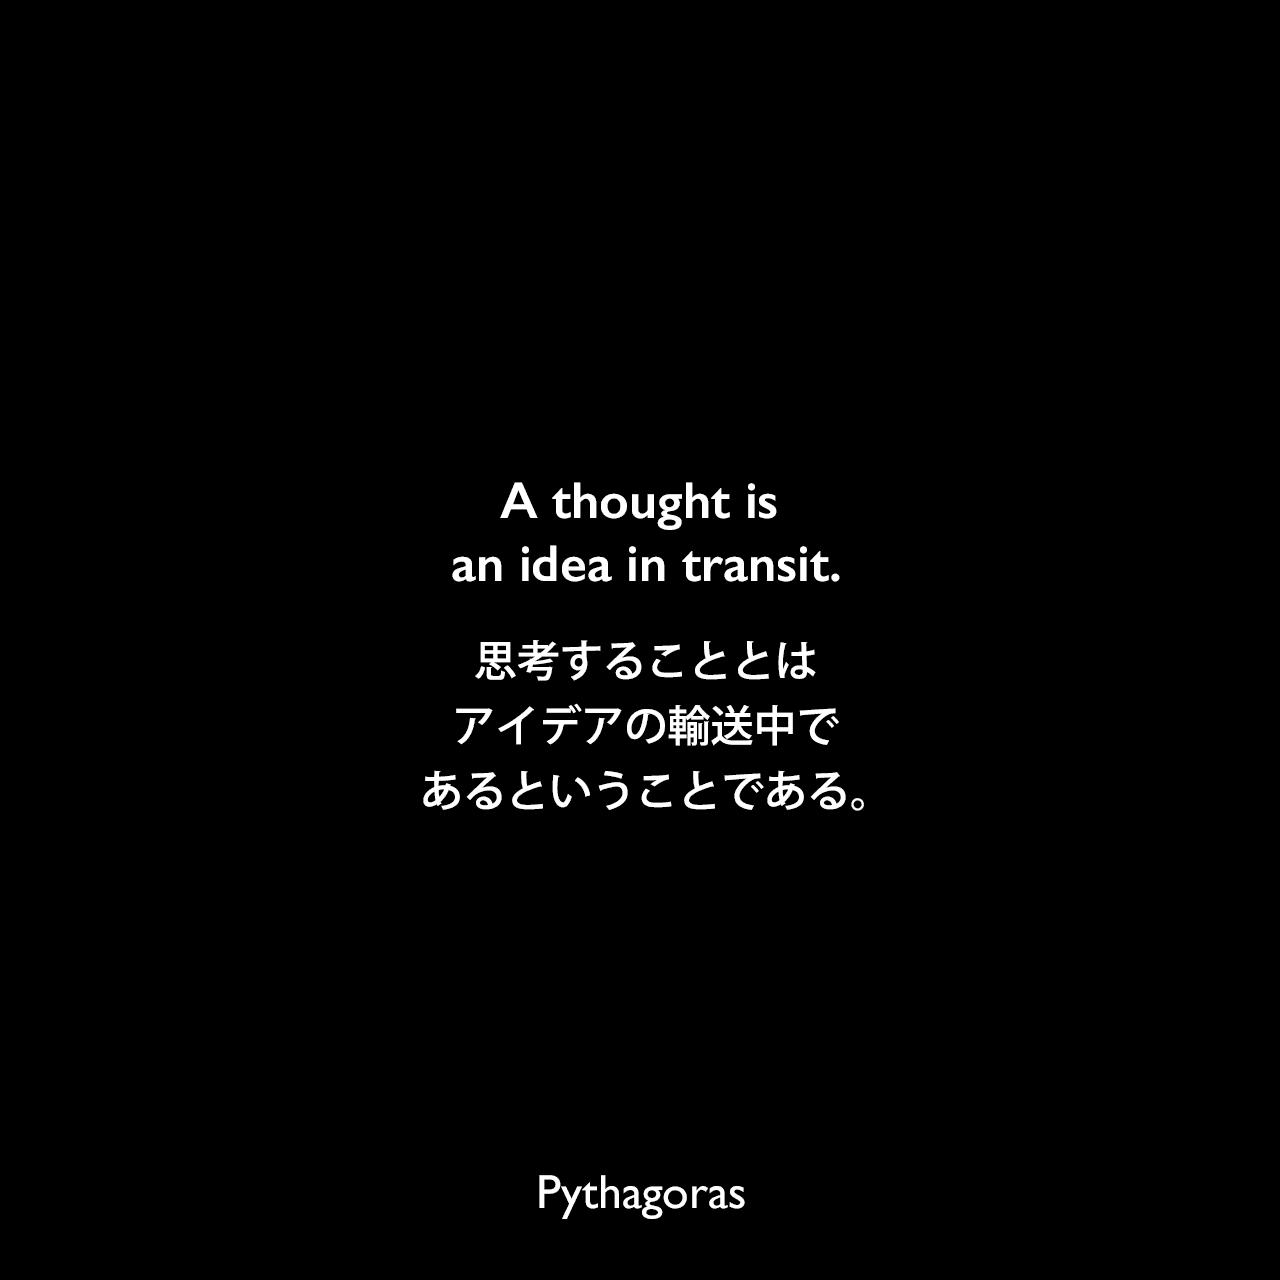 A thought is an idea in transit.思考することとは、アイデアの輸送中であるということである。- Hobart Husonの本「Pythagoron: The Religious, Moral, and Ethical Teachings of Pythagoras」よりPythagoras